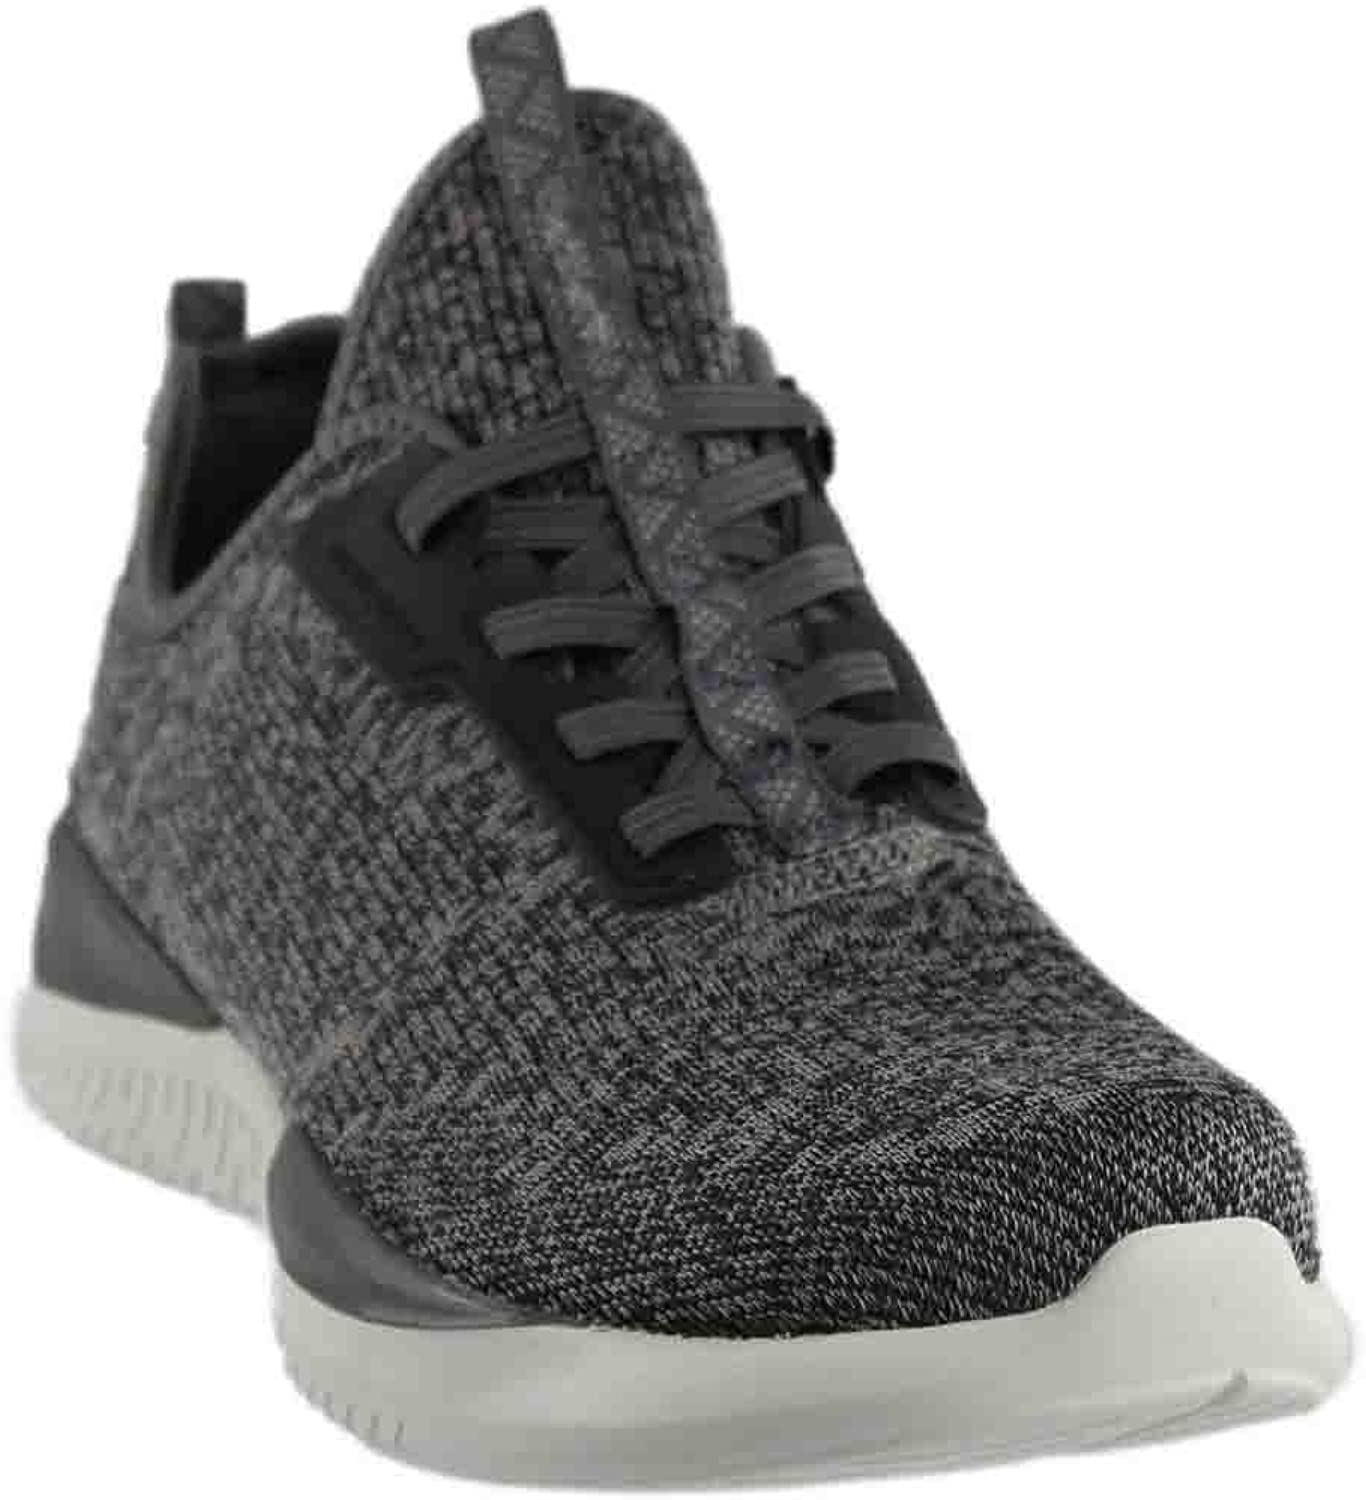 SKECHERS 12456 CHAR MATRIXX KNITTED COMFORT TRAINERS